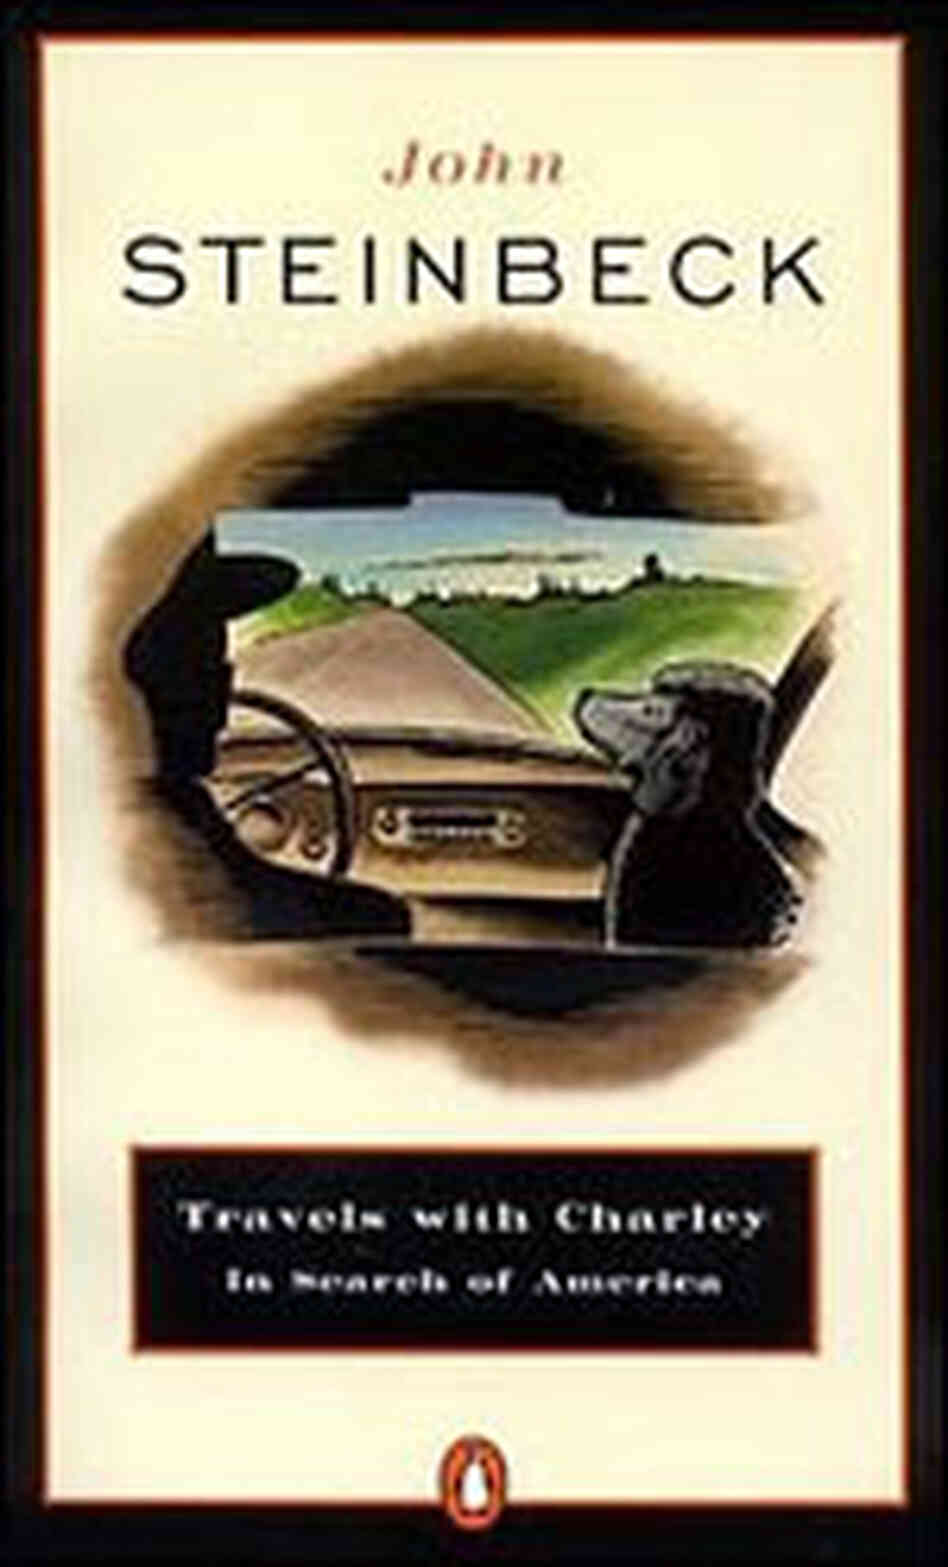 'Travels with Charley'